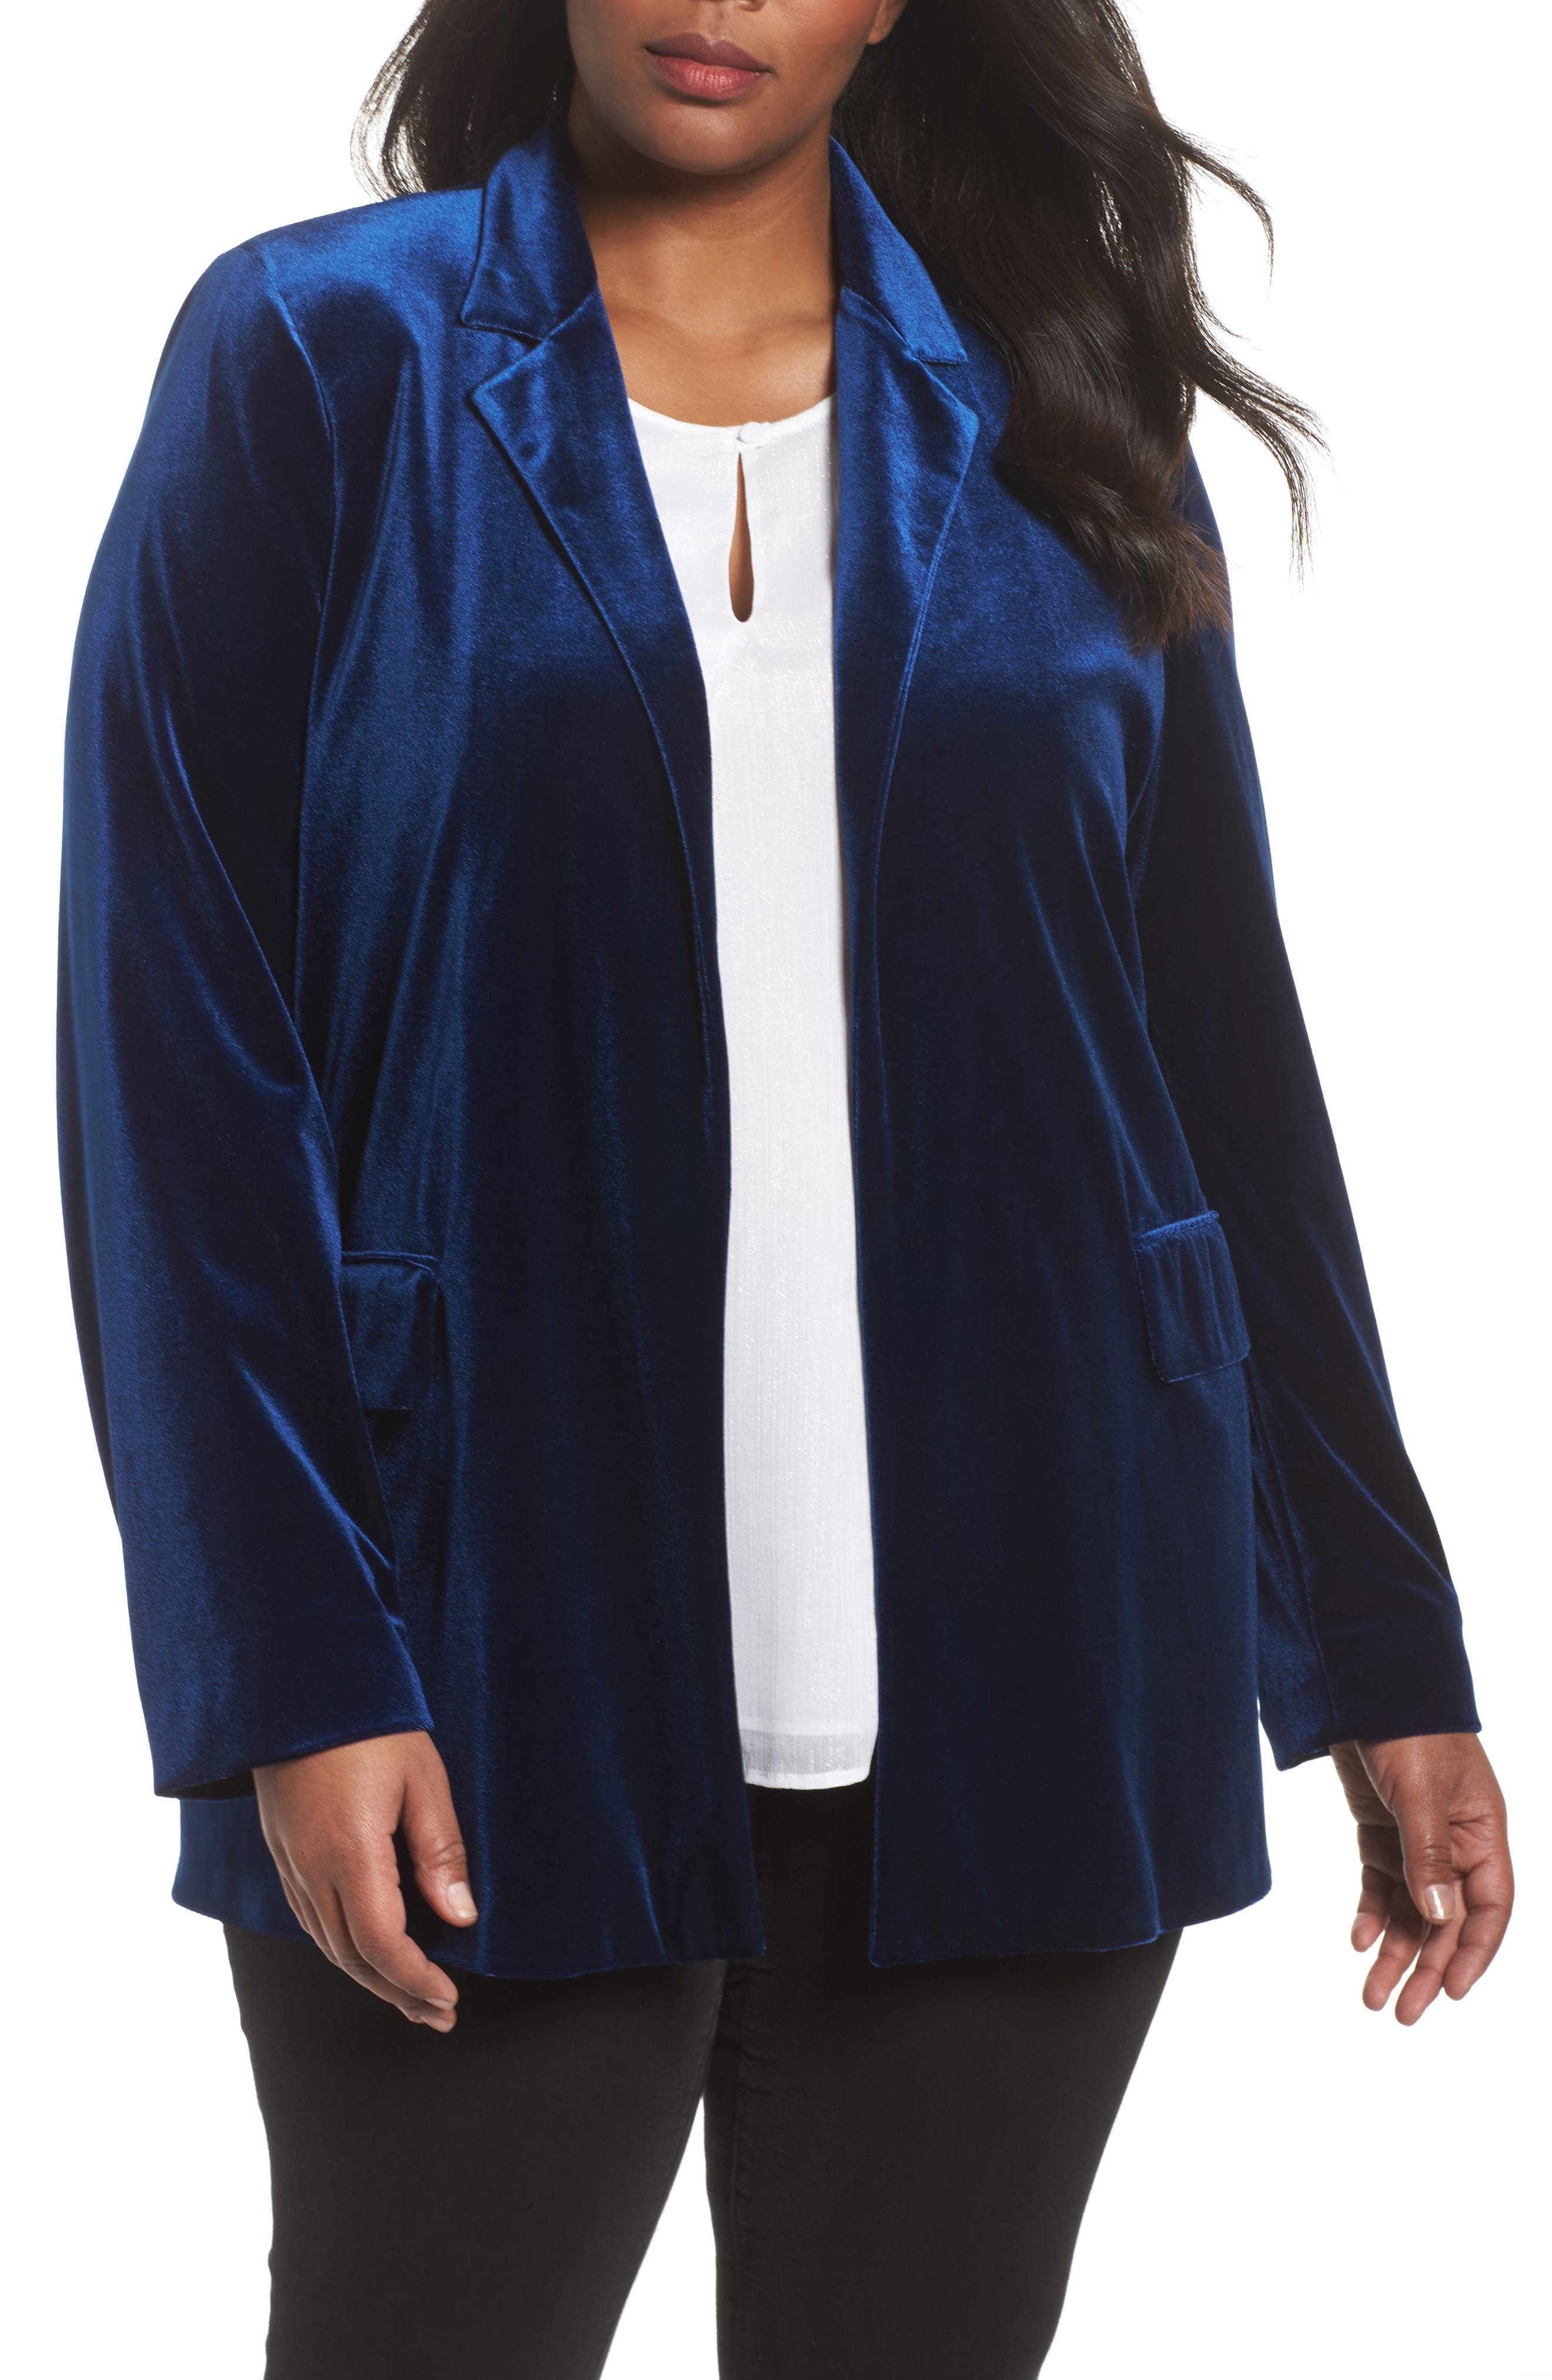 Alternate Image 1 Selected - Persona by Marina Rinaldi Caraibi Velvet Blazer (Plus Size)